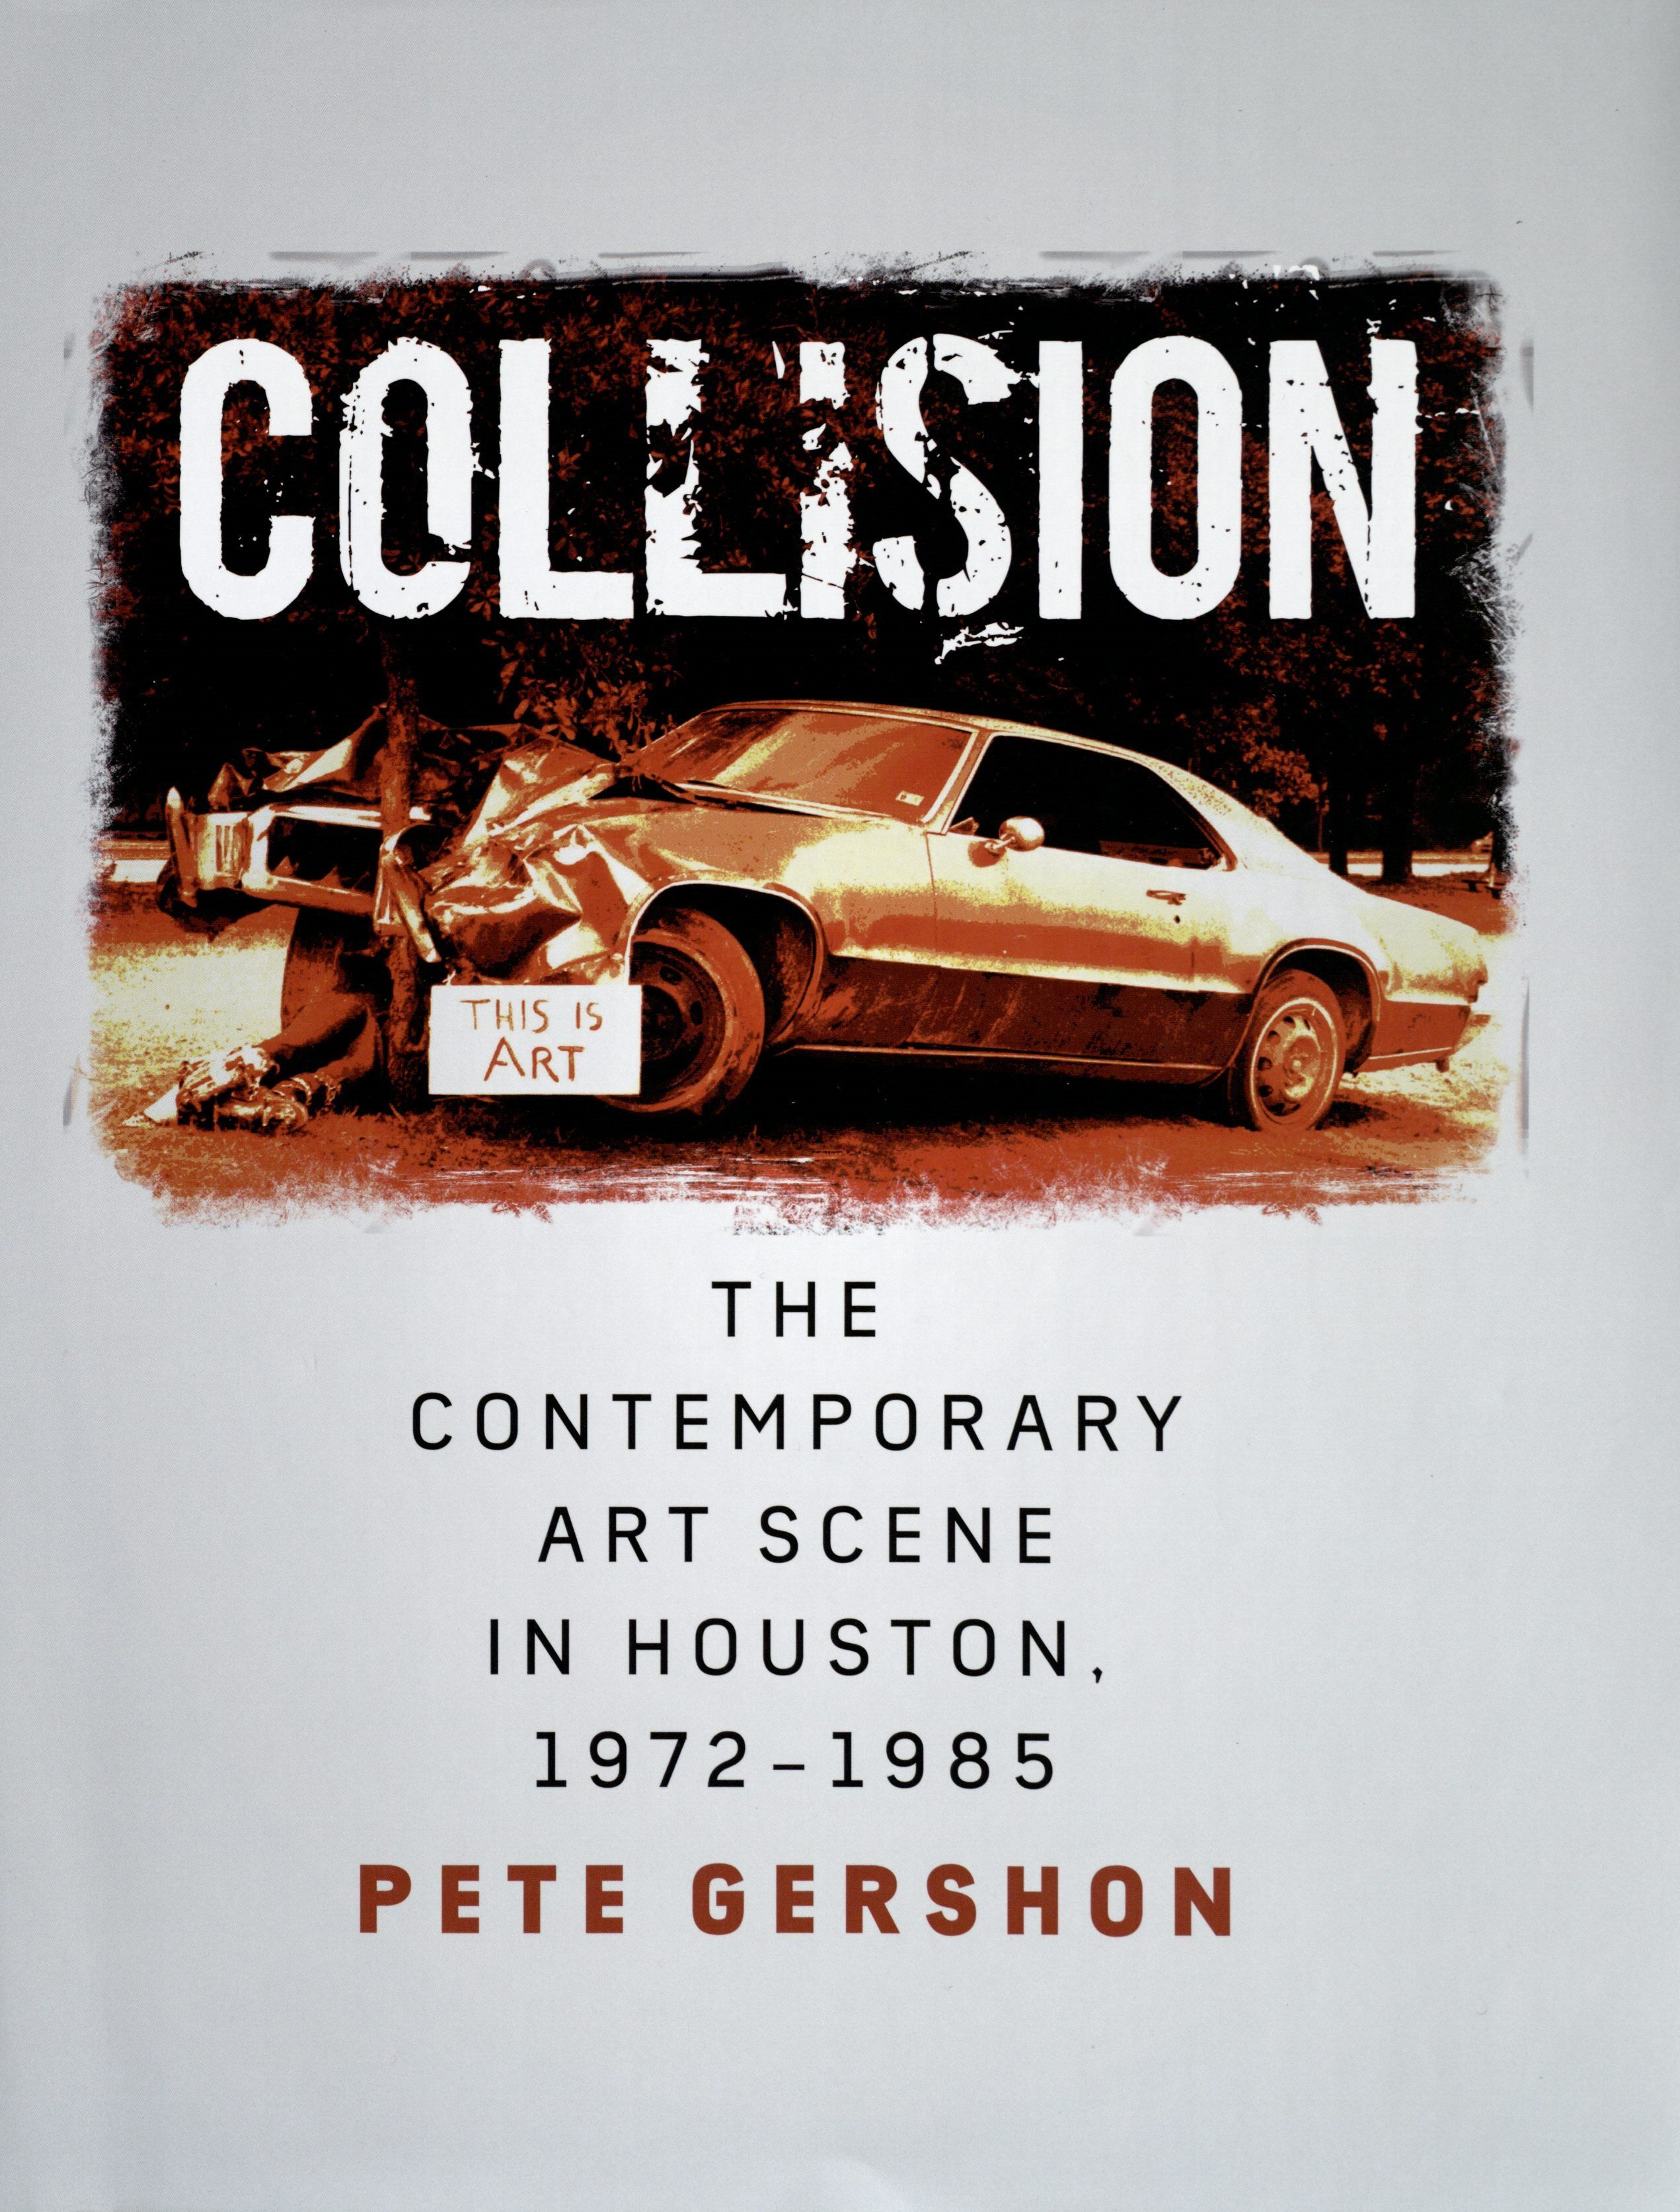 Gershon, Pete. Collision: The Contemporary Art Scene in Houston, 1972-1985. College Station, TX: Texas A&M University Press, 2018. Print.